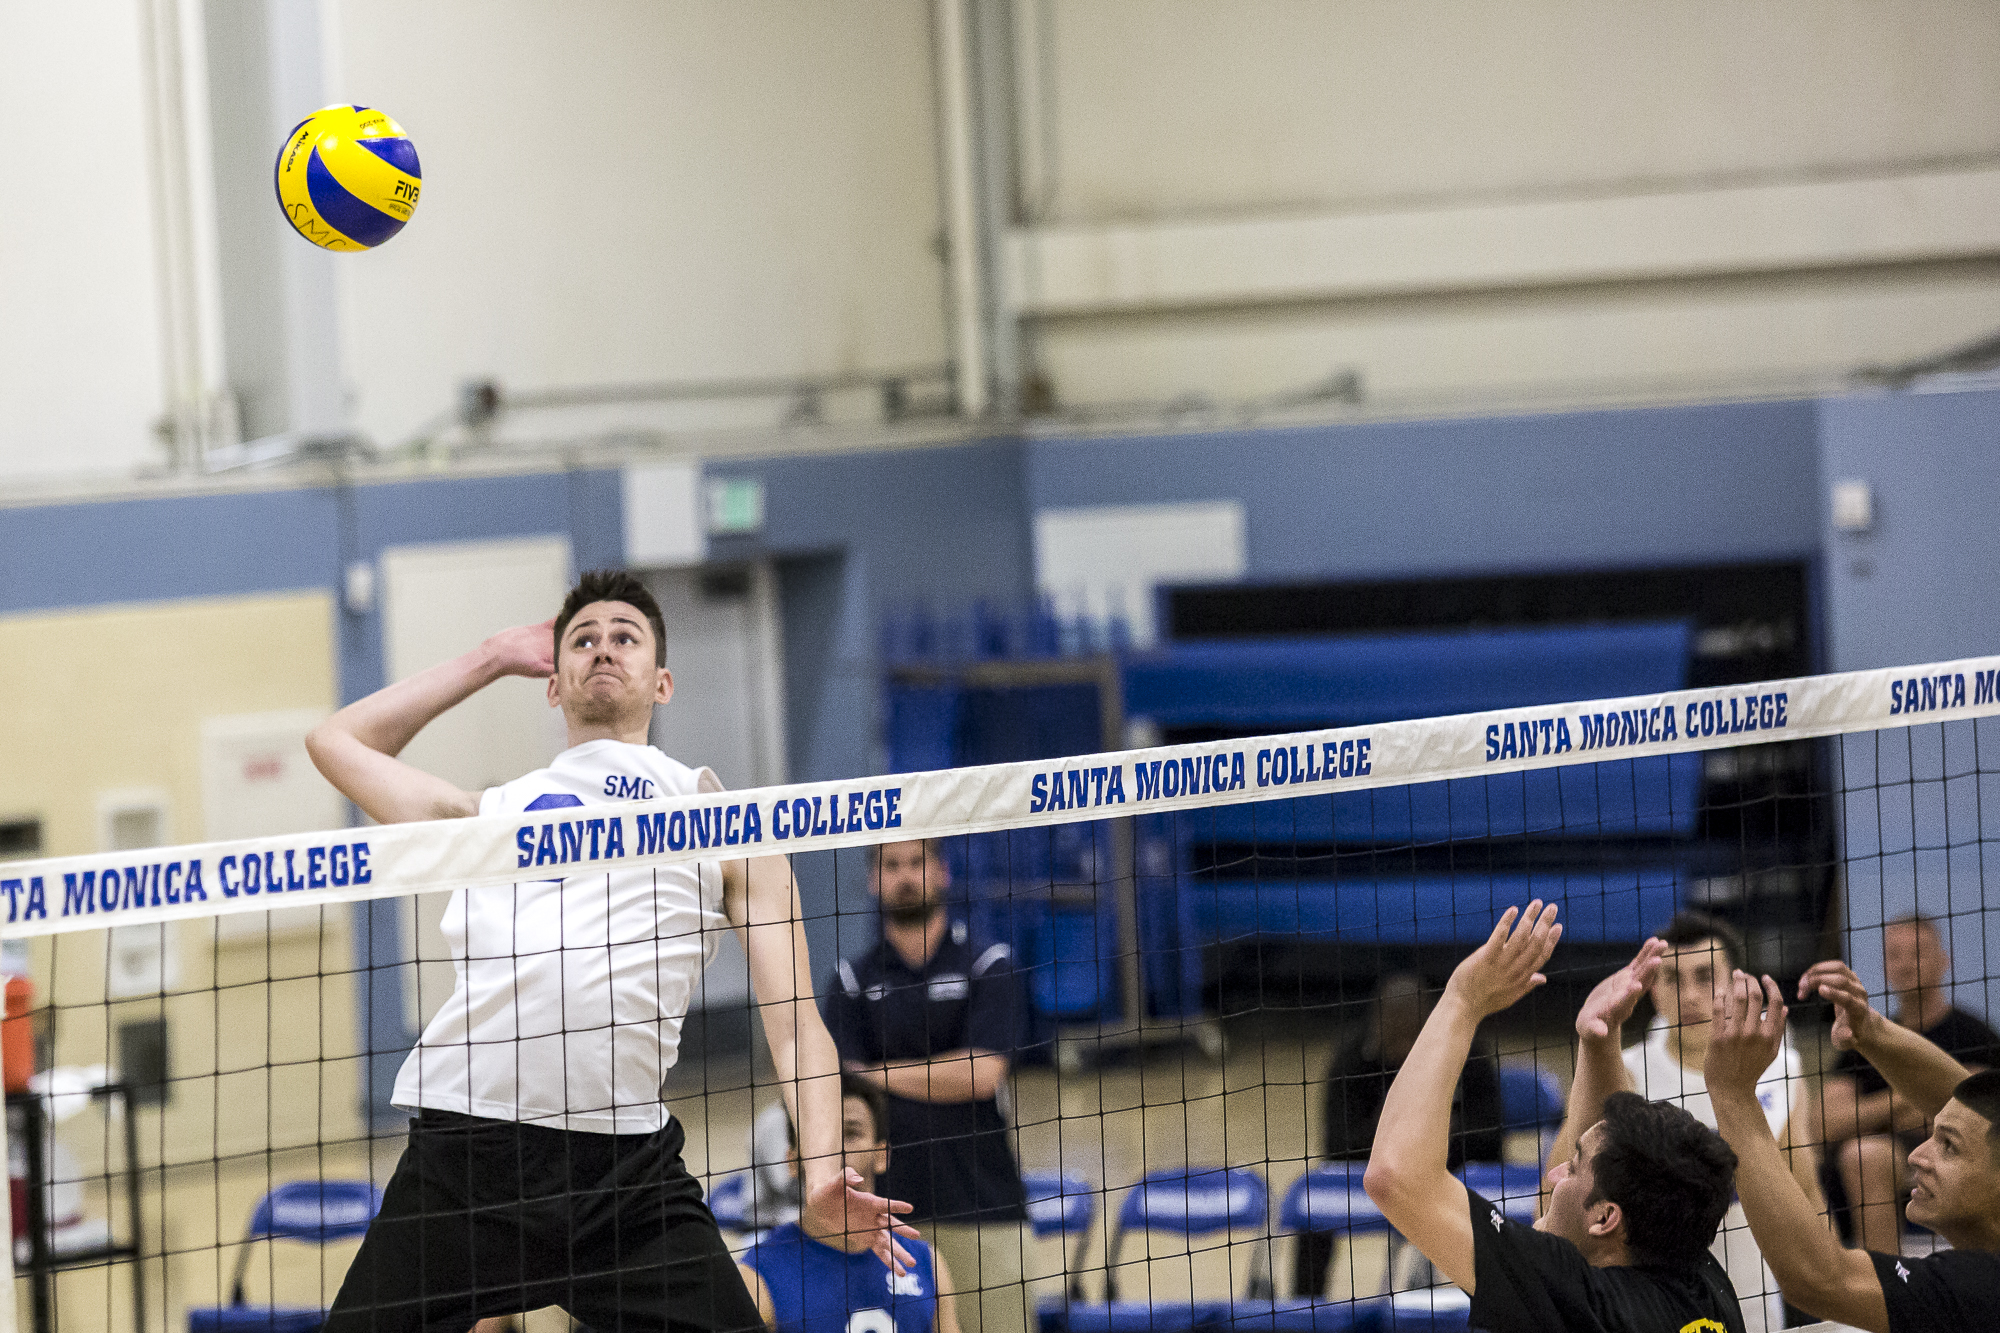 Santa Monica College Corsair middle-hitter Nick Kostetsky #8 (left, white) leaps in the air to hit a very powerful spike into the defense of the Los Angeles Trade Tech Beavers during the Corsairs 3-0 blowout victory against the Tech Beavers in the Santa Monica College (SMC) Pavilion at the SMC main campus in Santa Monica California, on Friday, March 30 2018. (Matthew Martin/Corsair Photo).